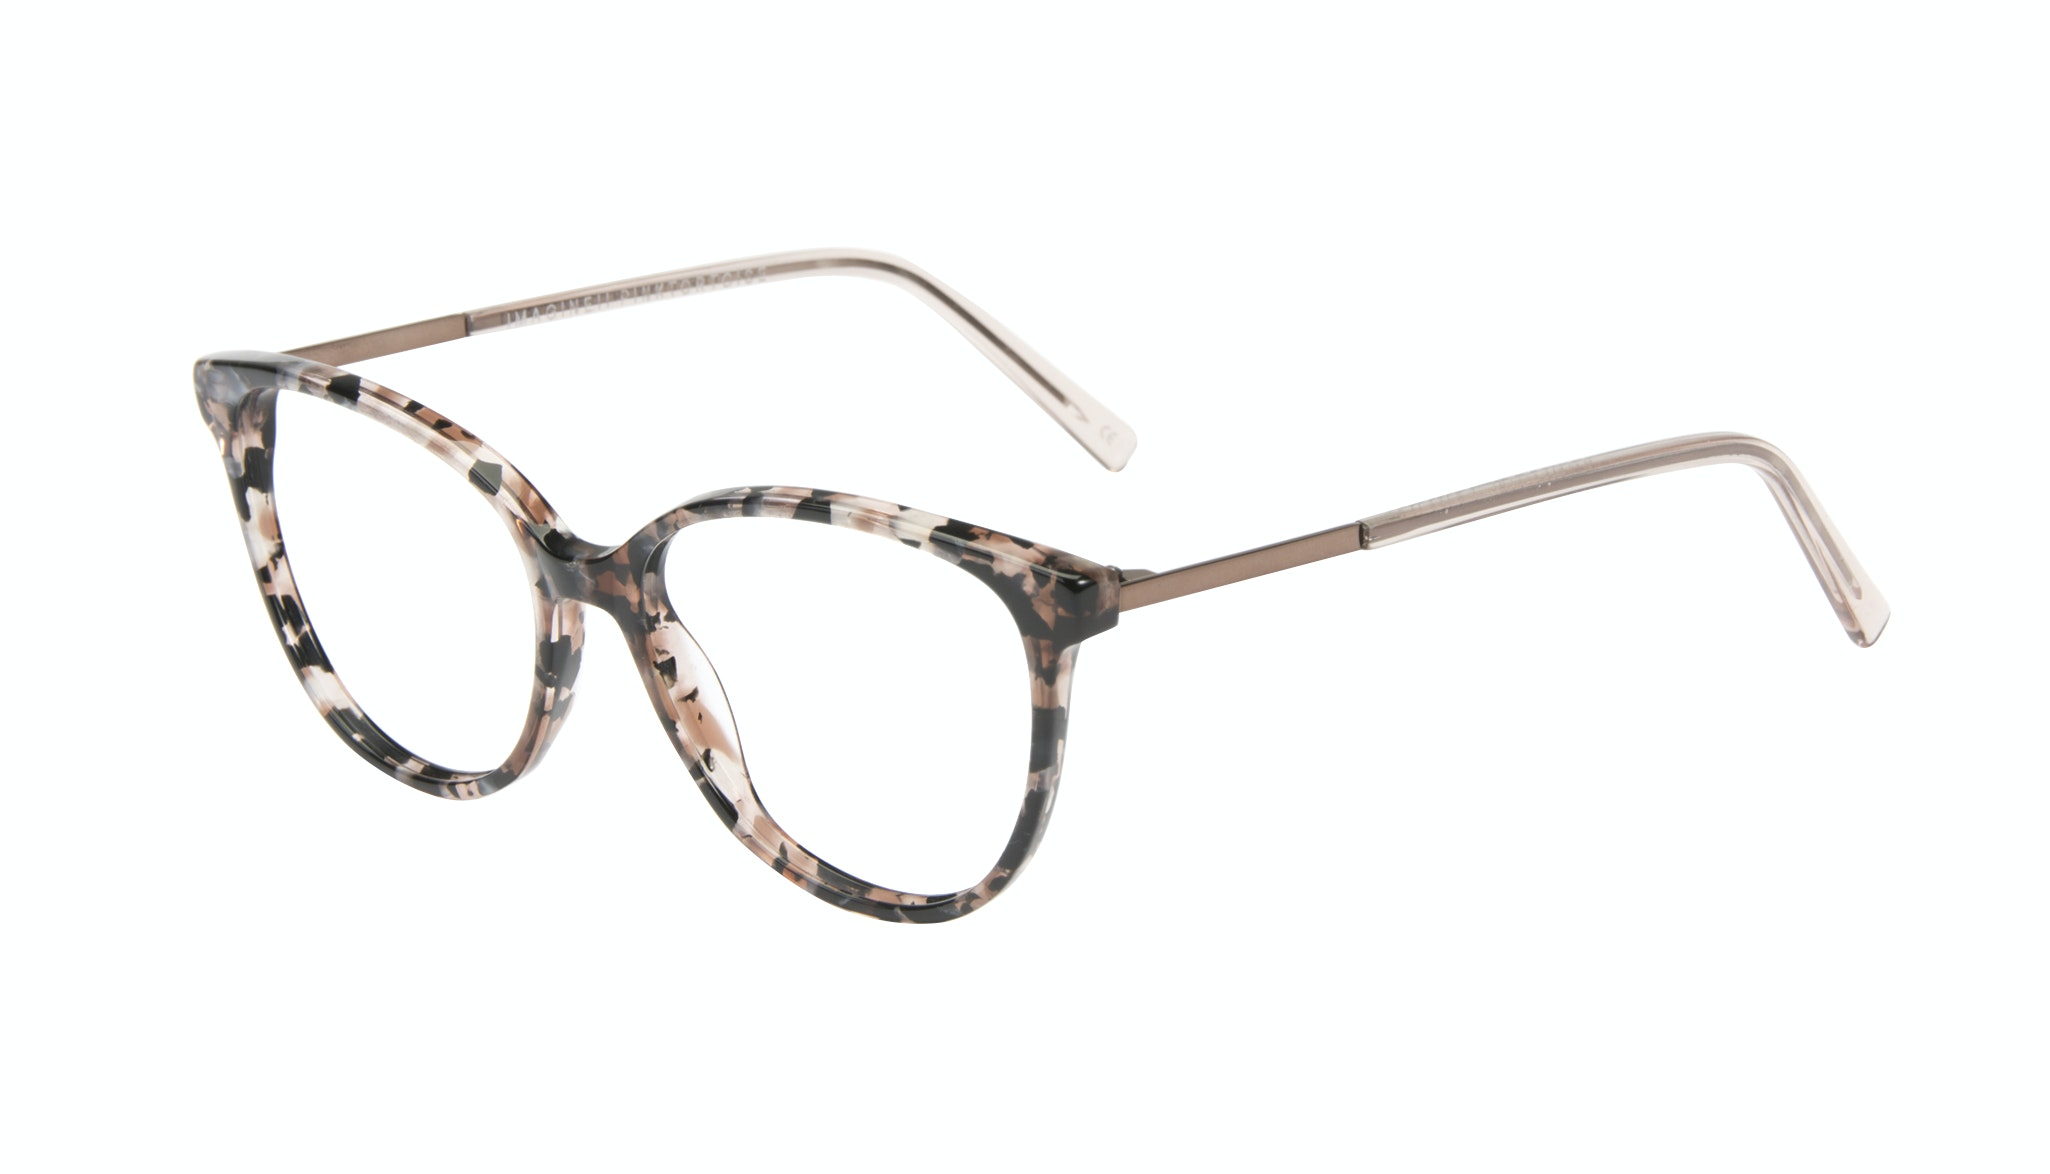 Affordable Fashion Glasses Cat Eye Eyeglasses Women Imagine II Pink Tortoise Tilt